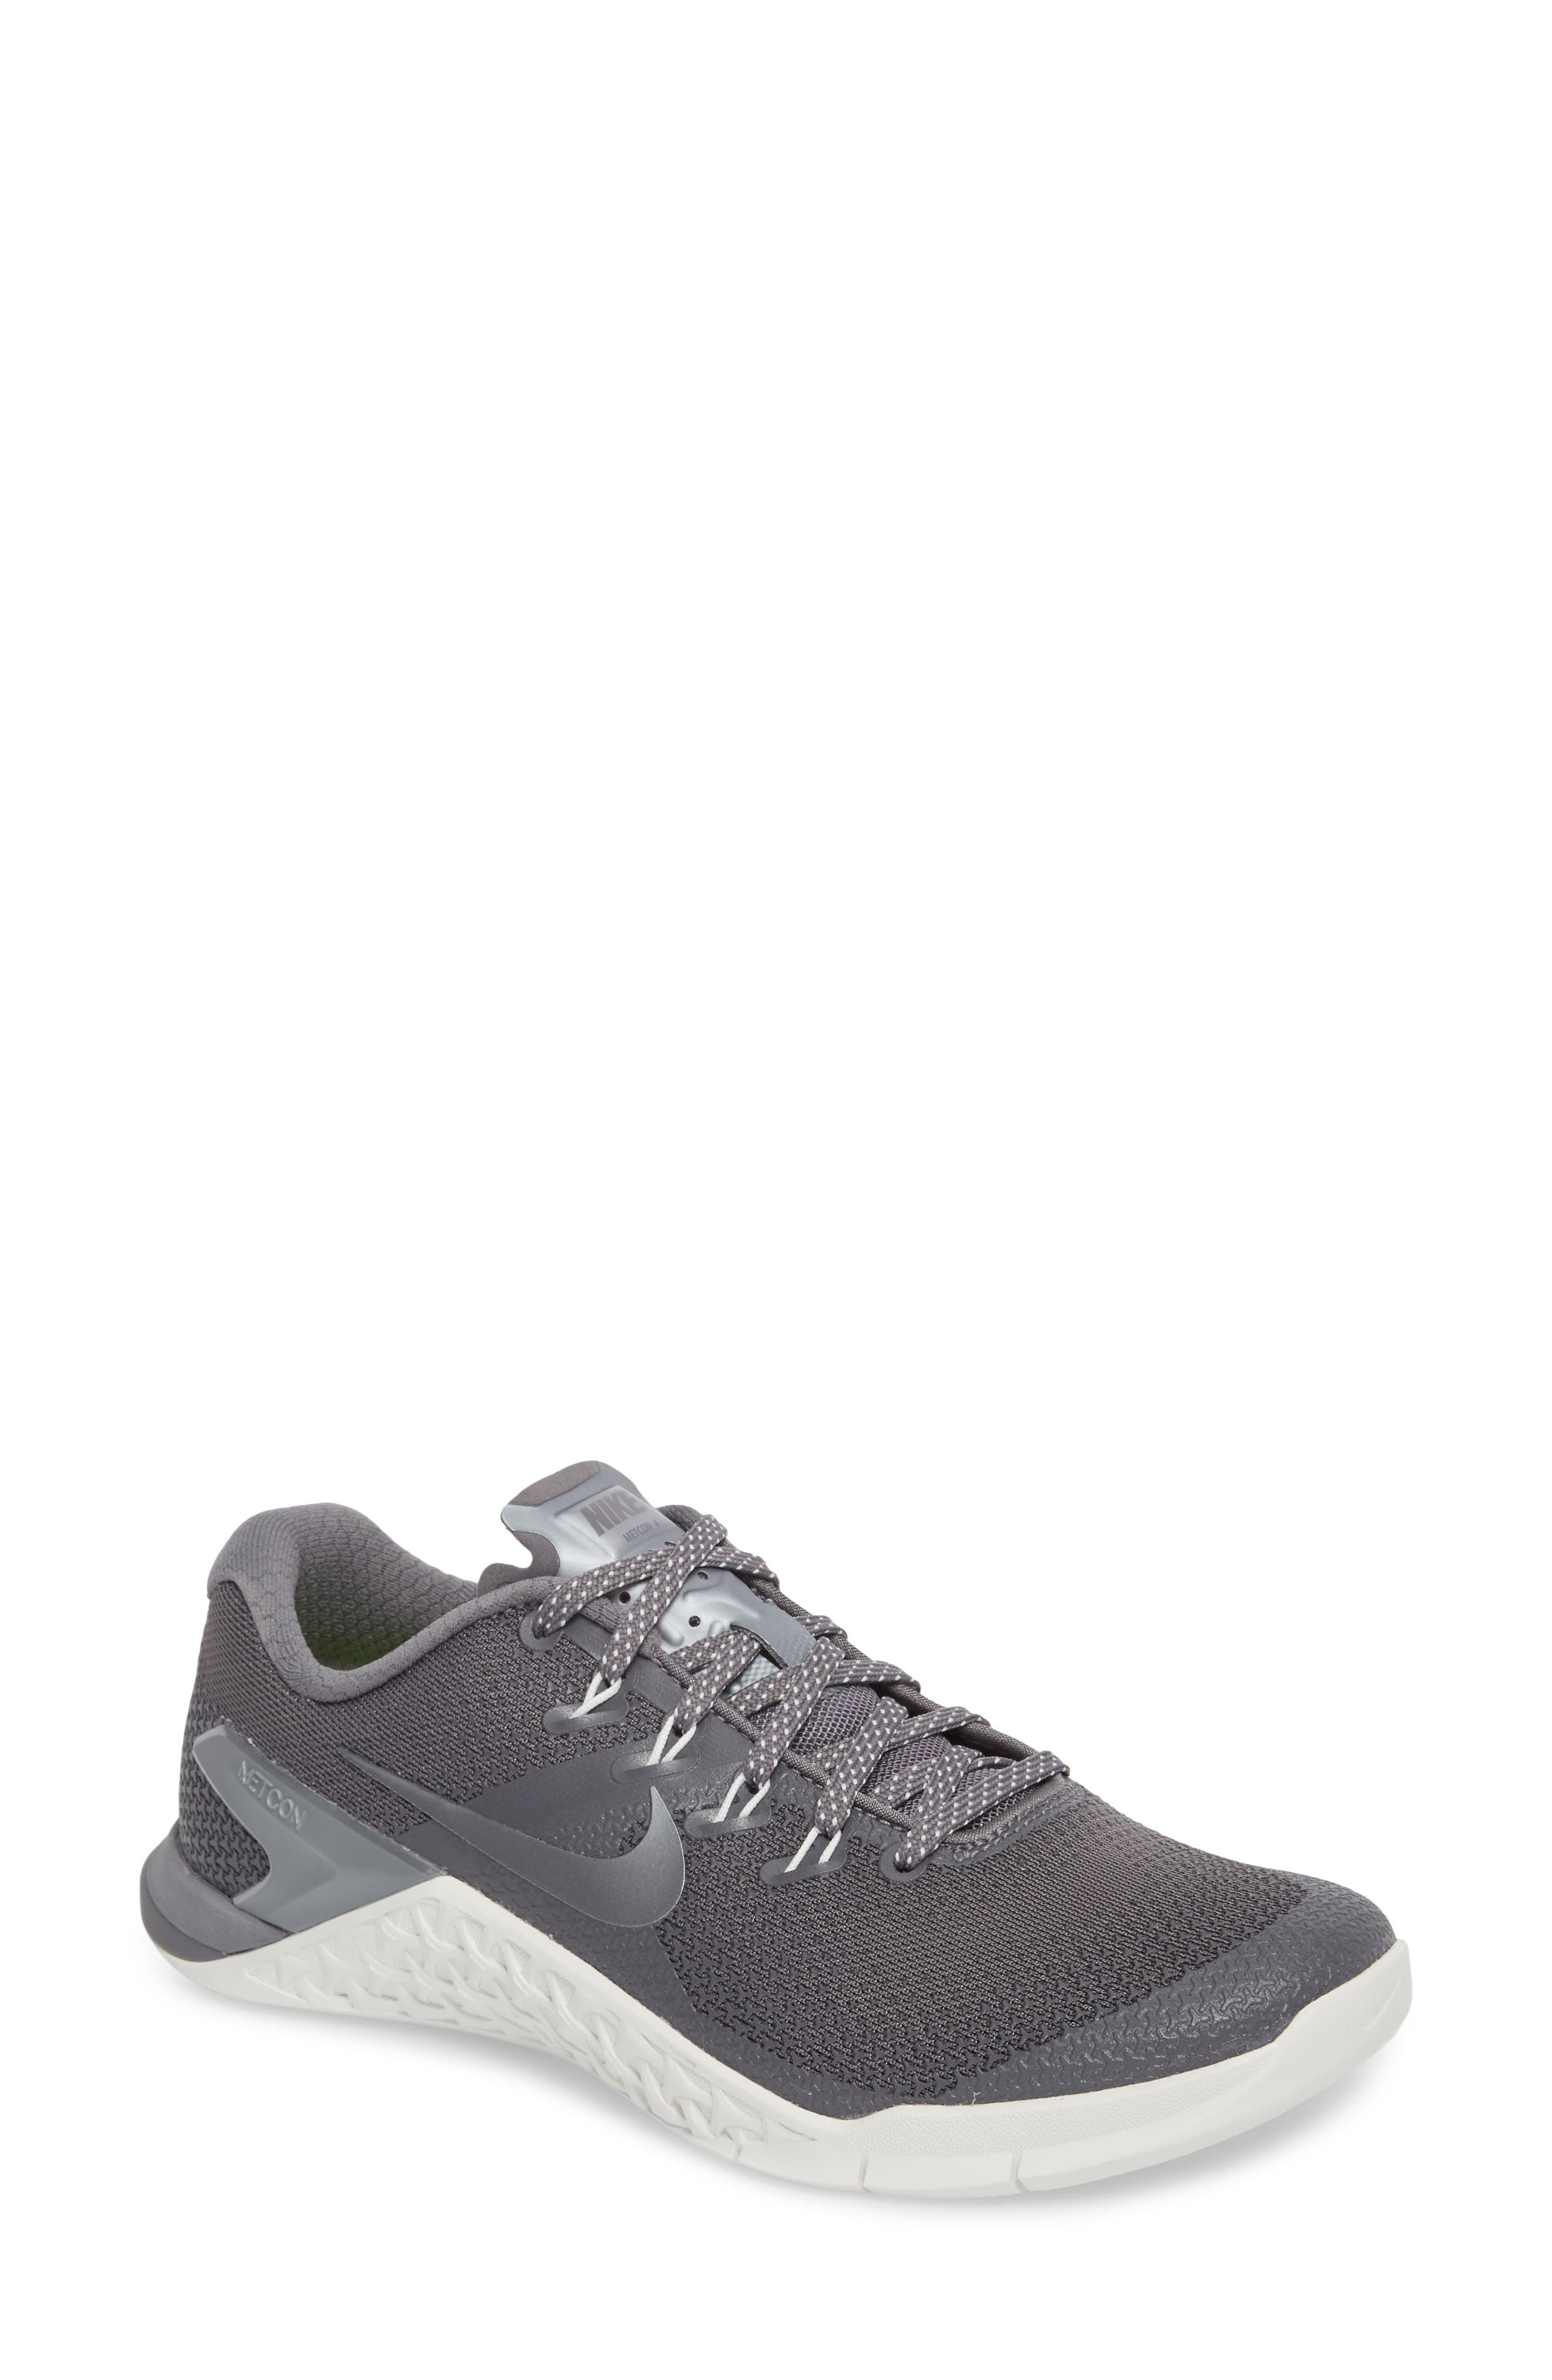 Metcon 4 Training Shoe,                             Main thumbnail 3, color,